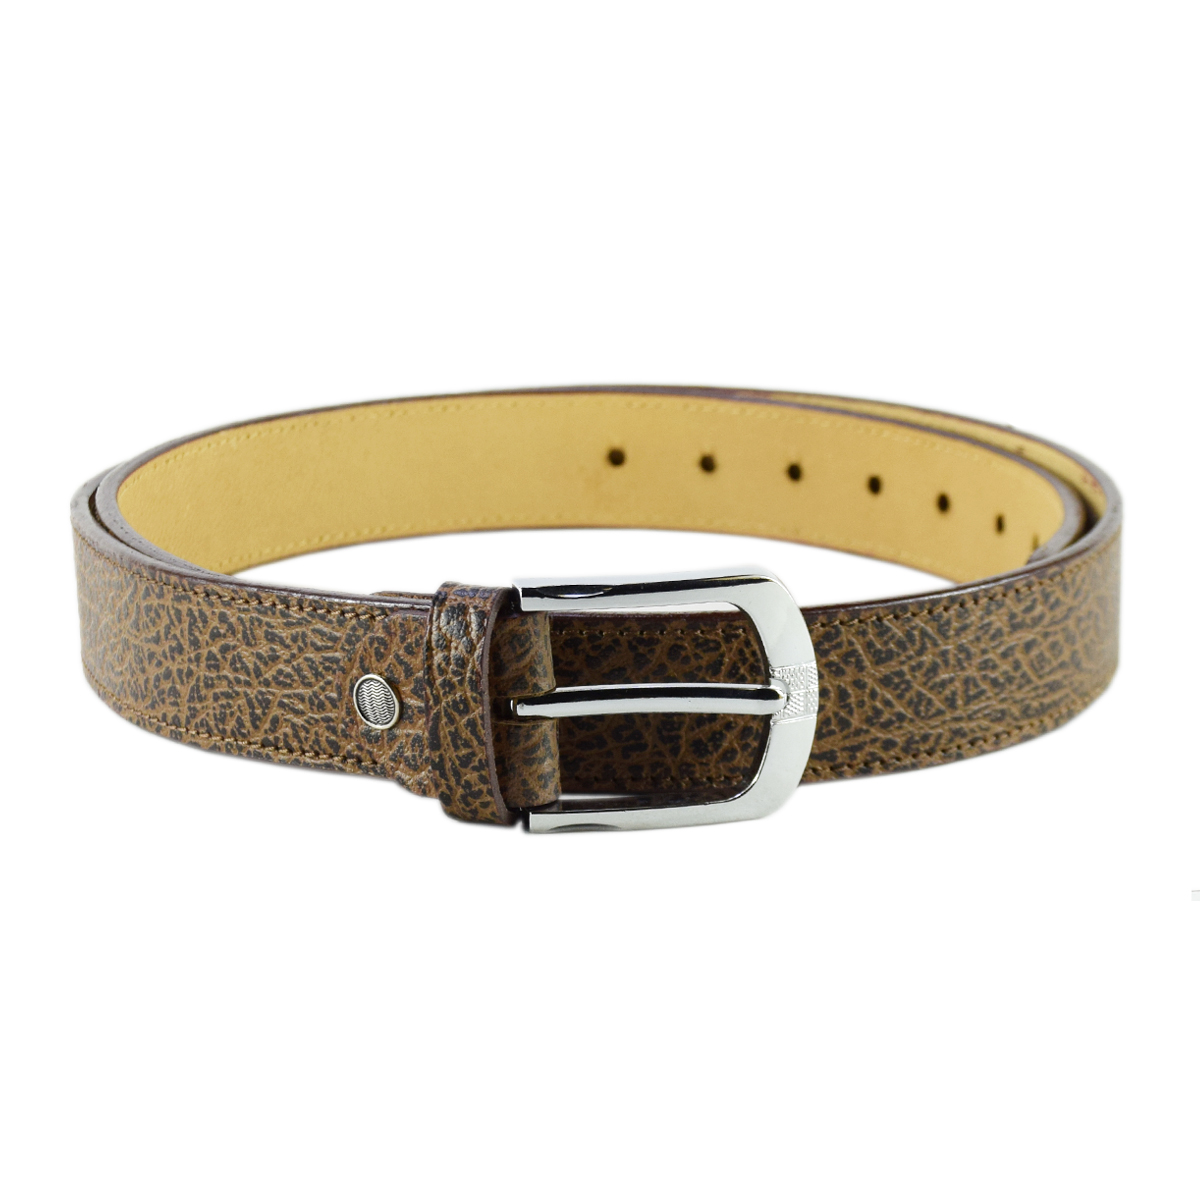 Brown Formal to Casual Leather Grain Belt 1.5""